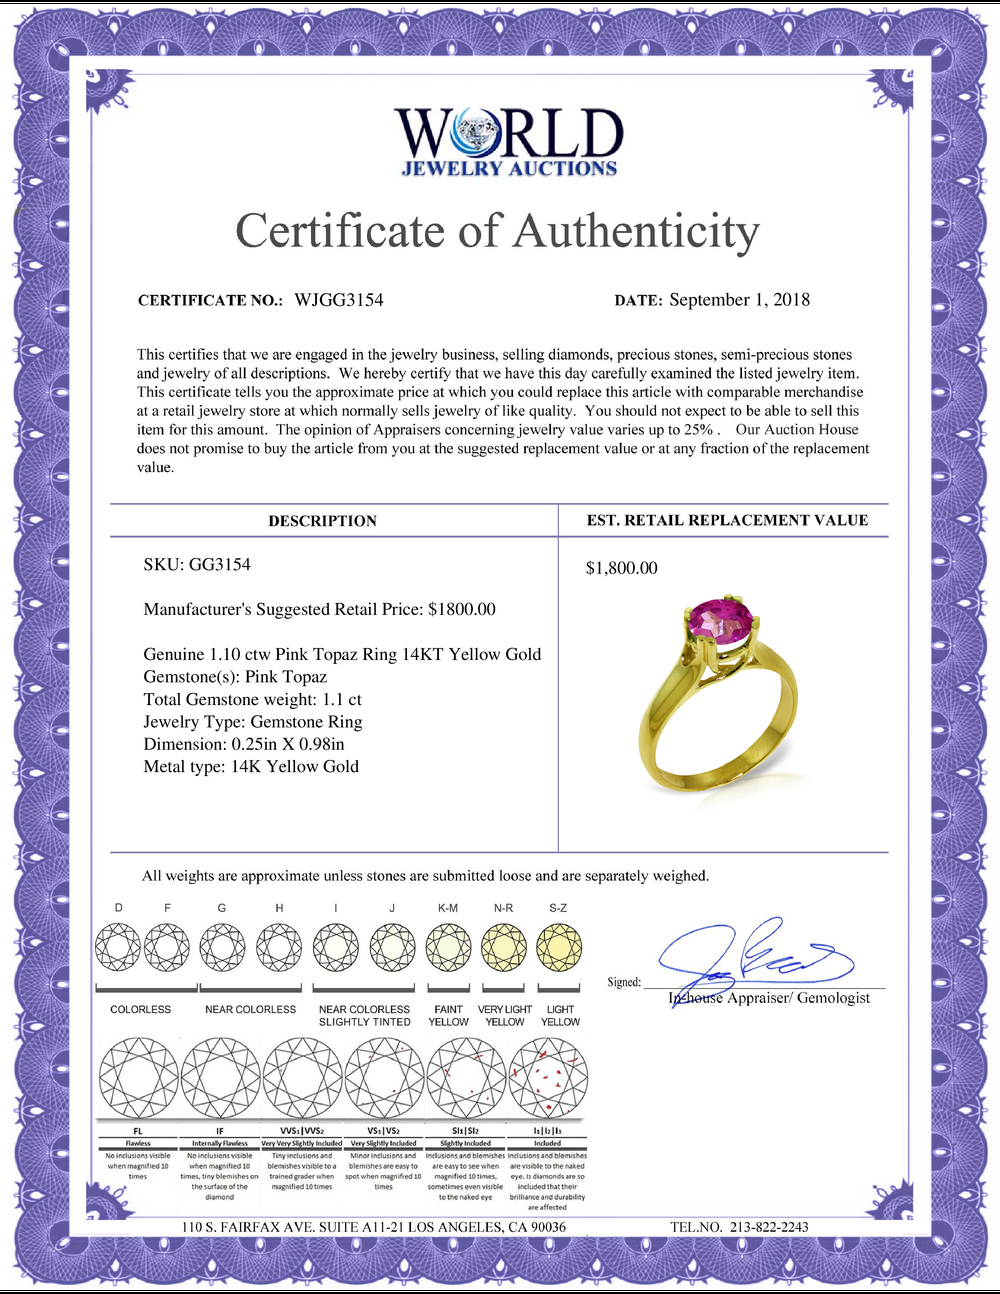 Lot 4083: Genuine 1.10 ctw Pink Topaz Ring Jewelry 14KT Yellow Gold - REF-57M6T